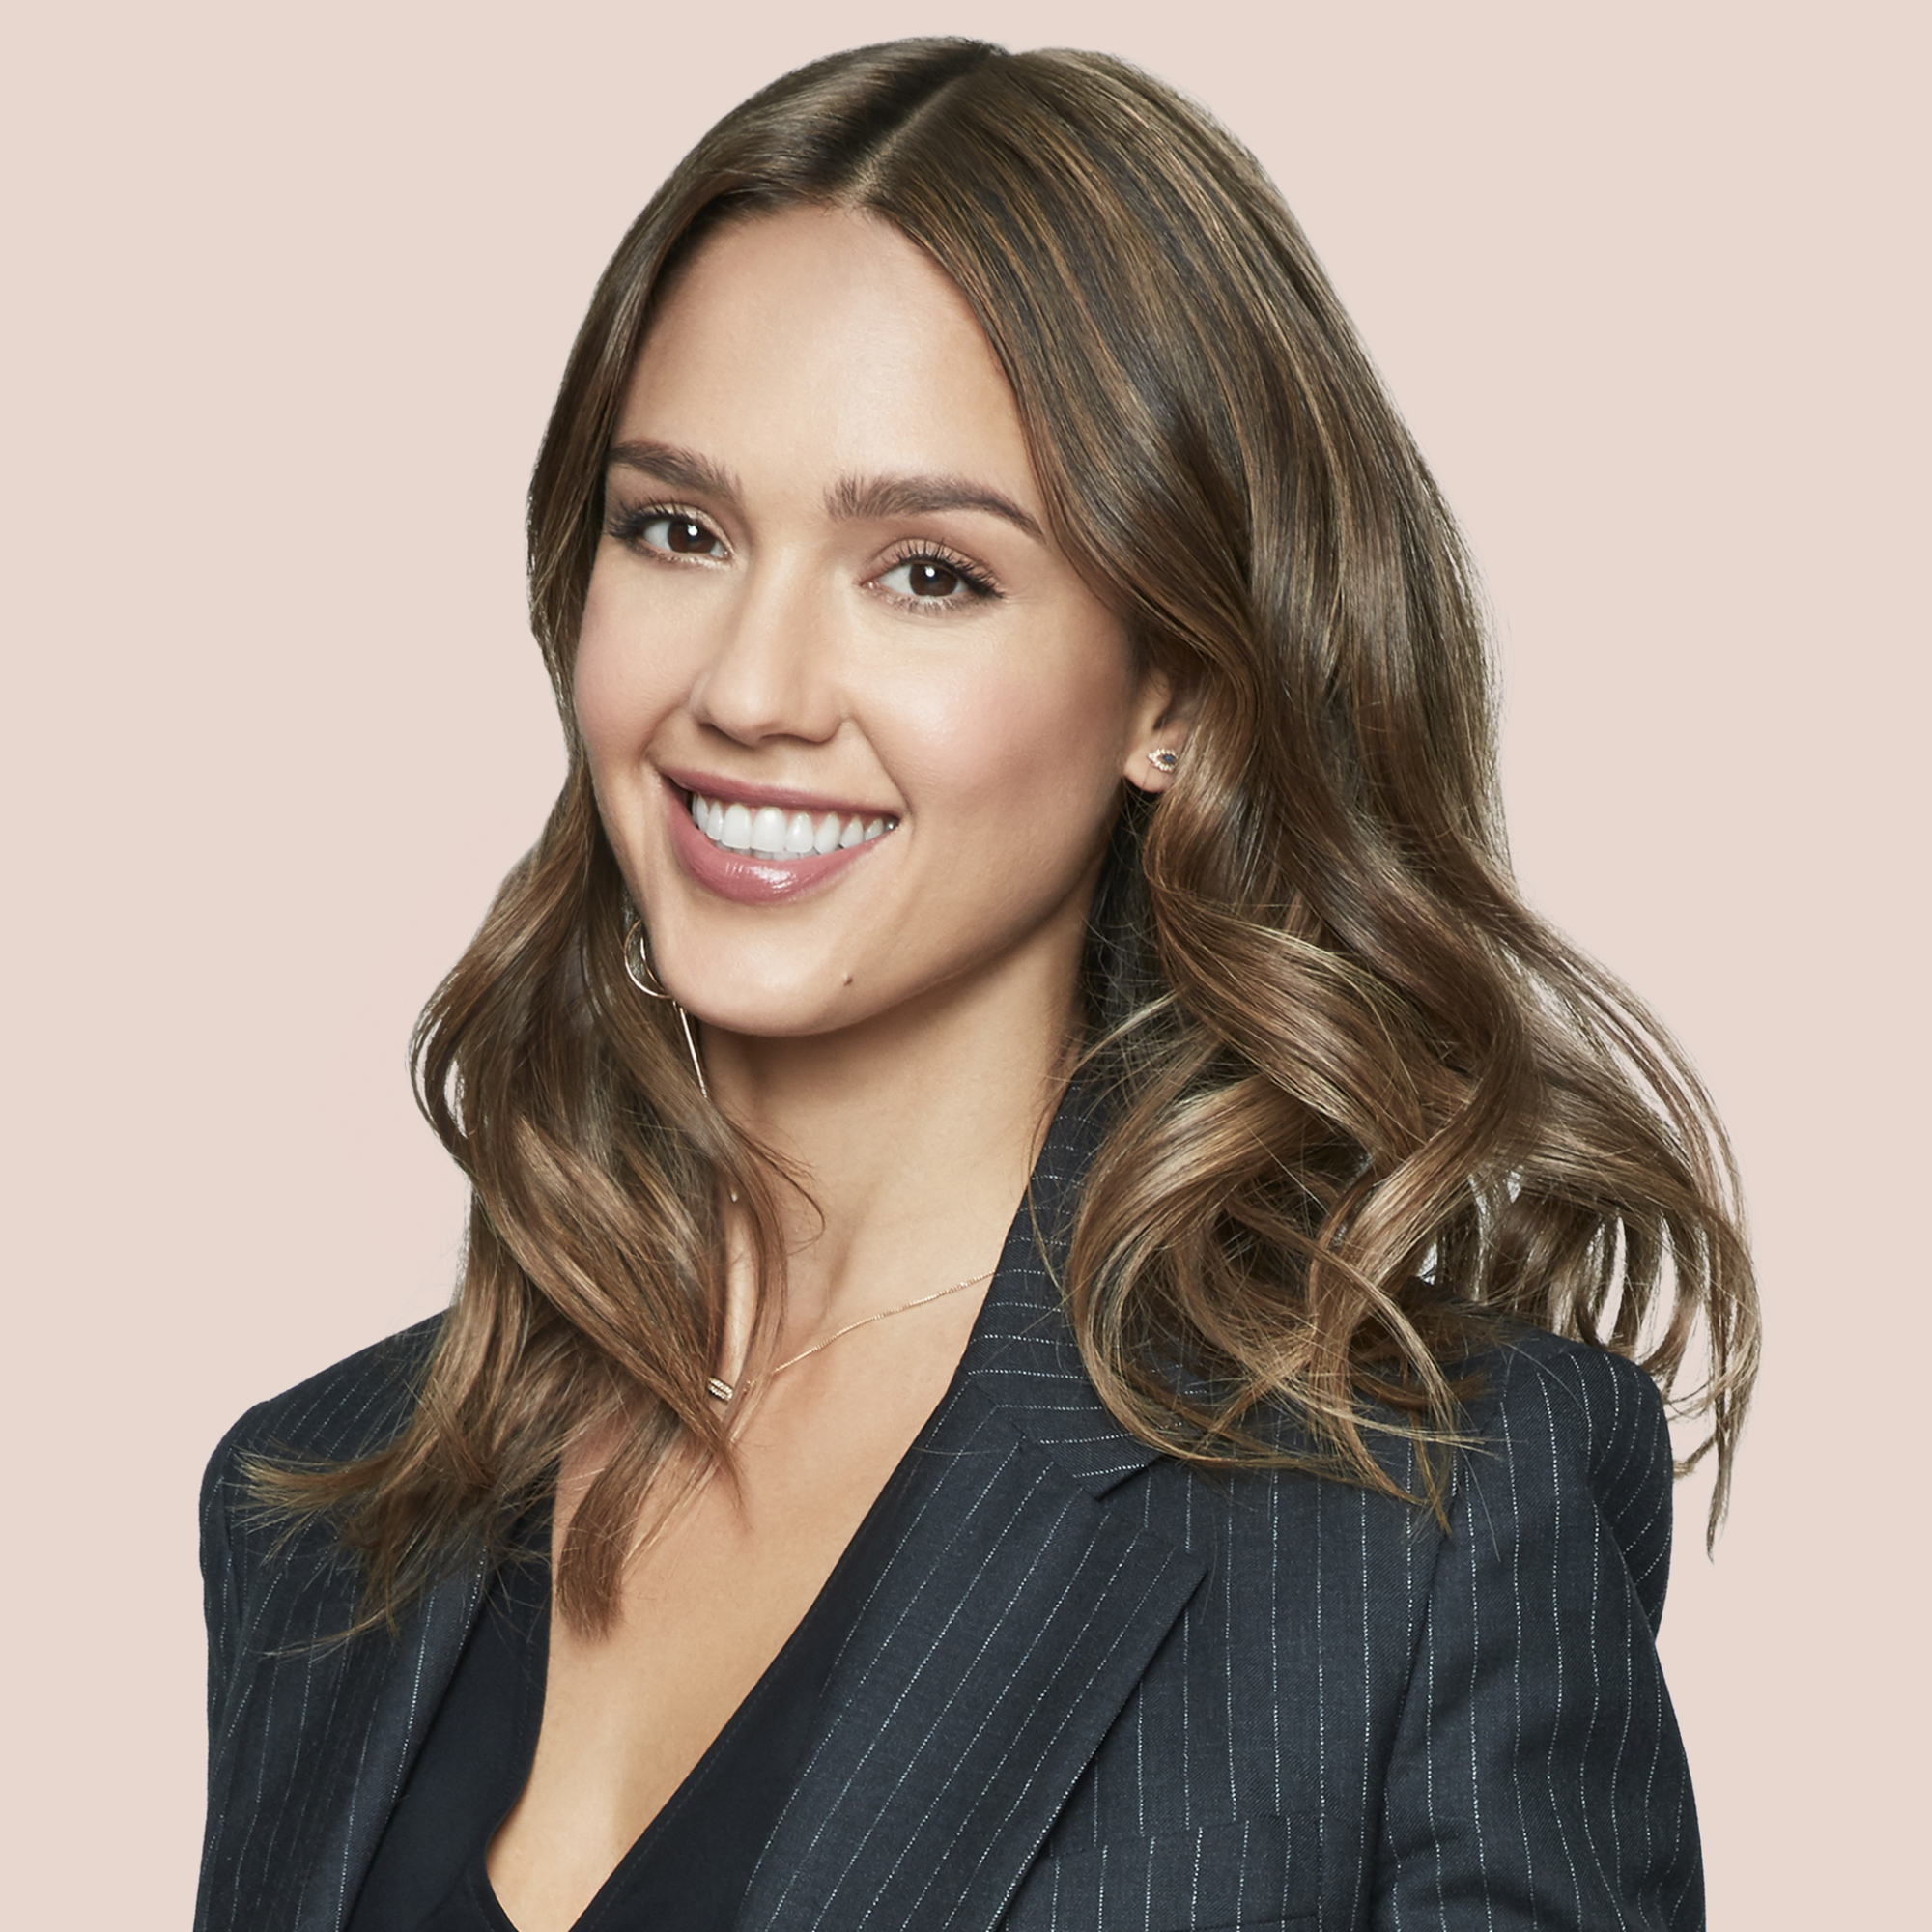 jessica-alba-facts